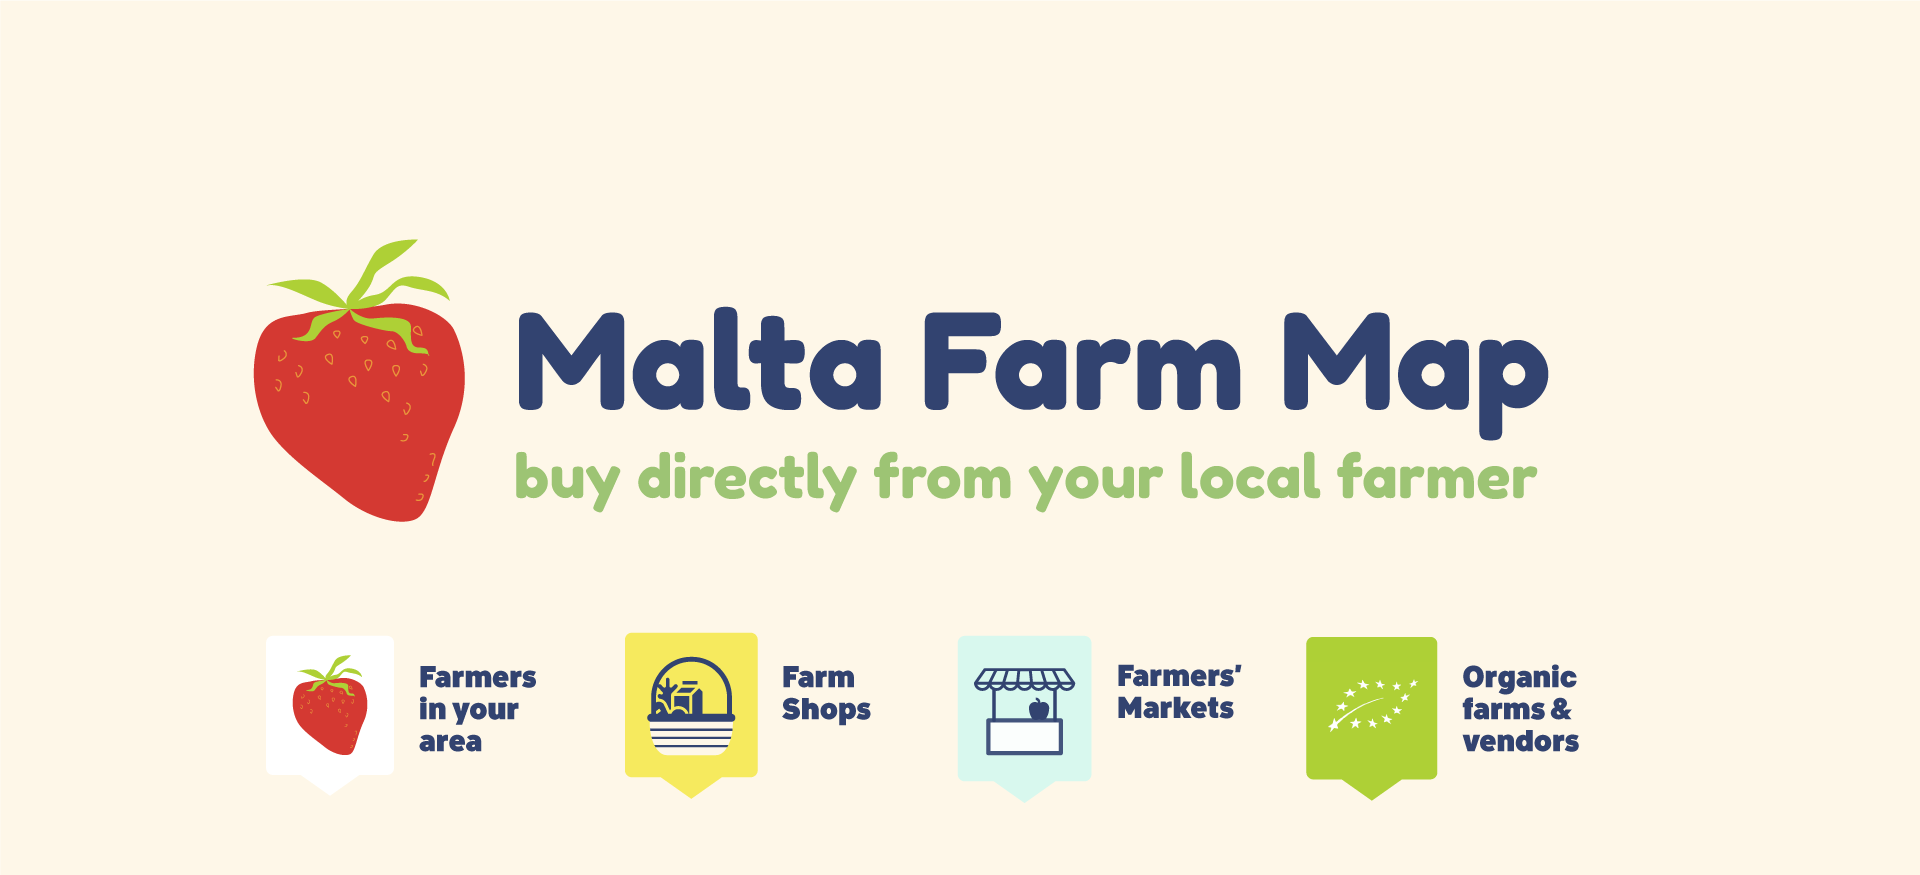 Malta Farm Map